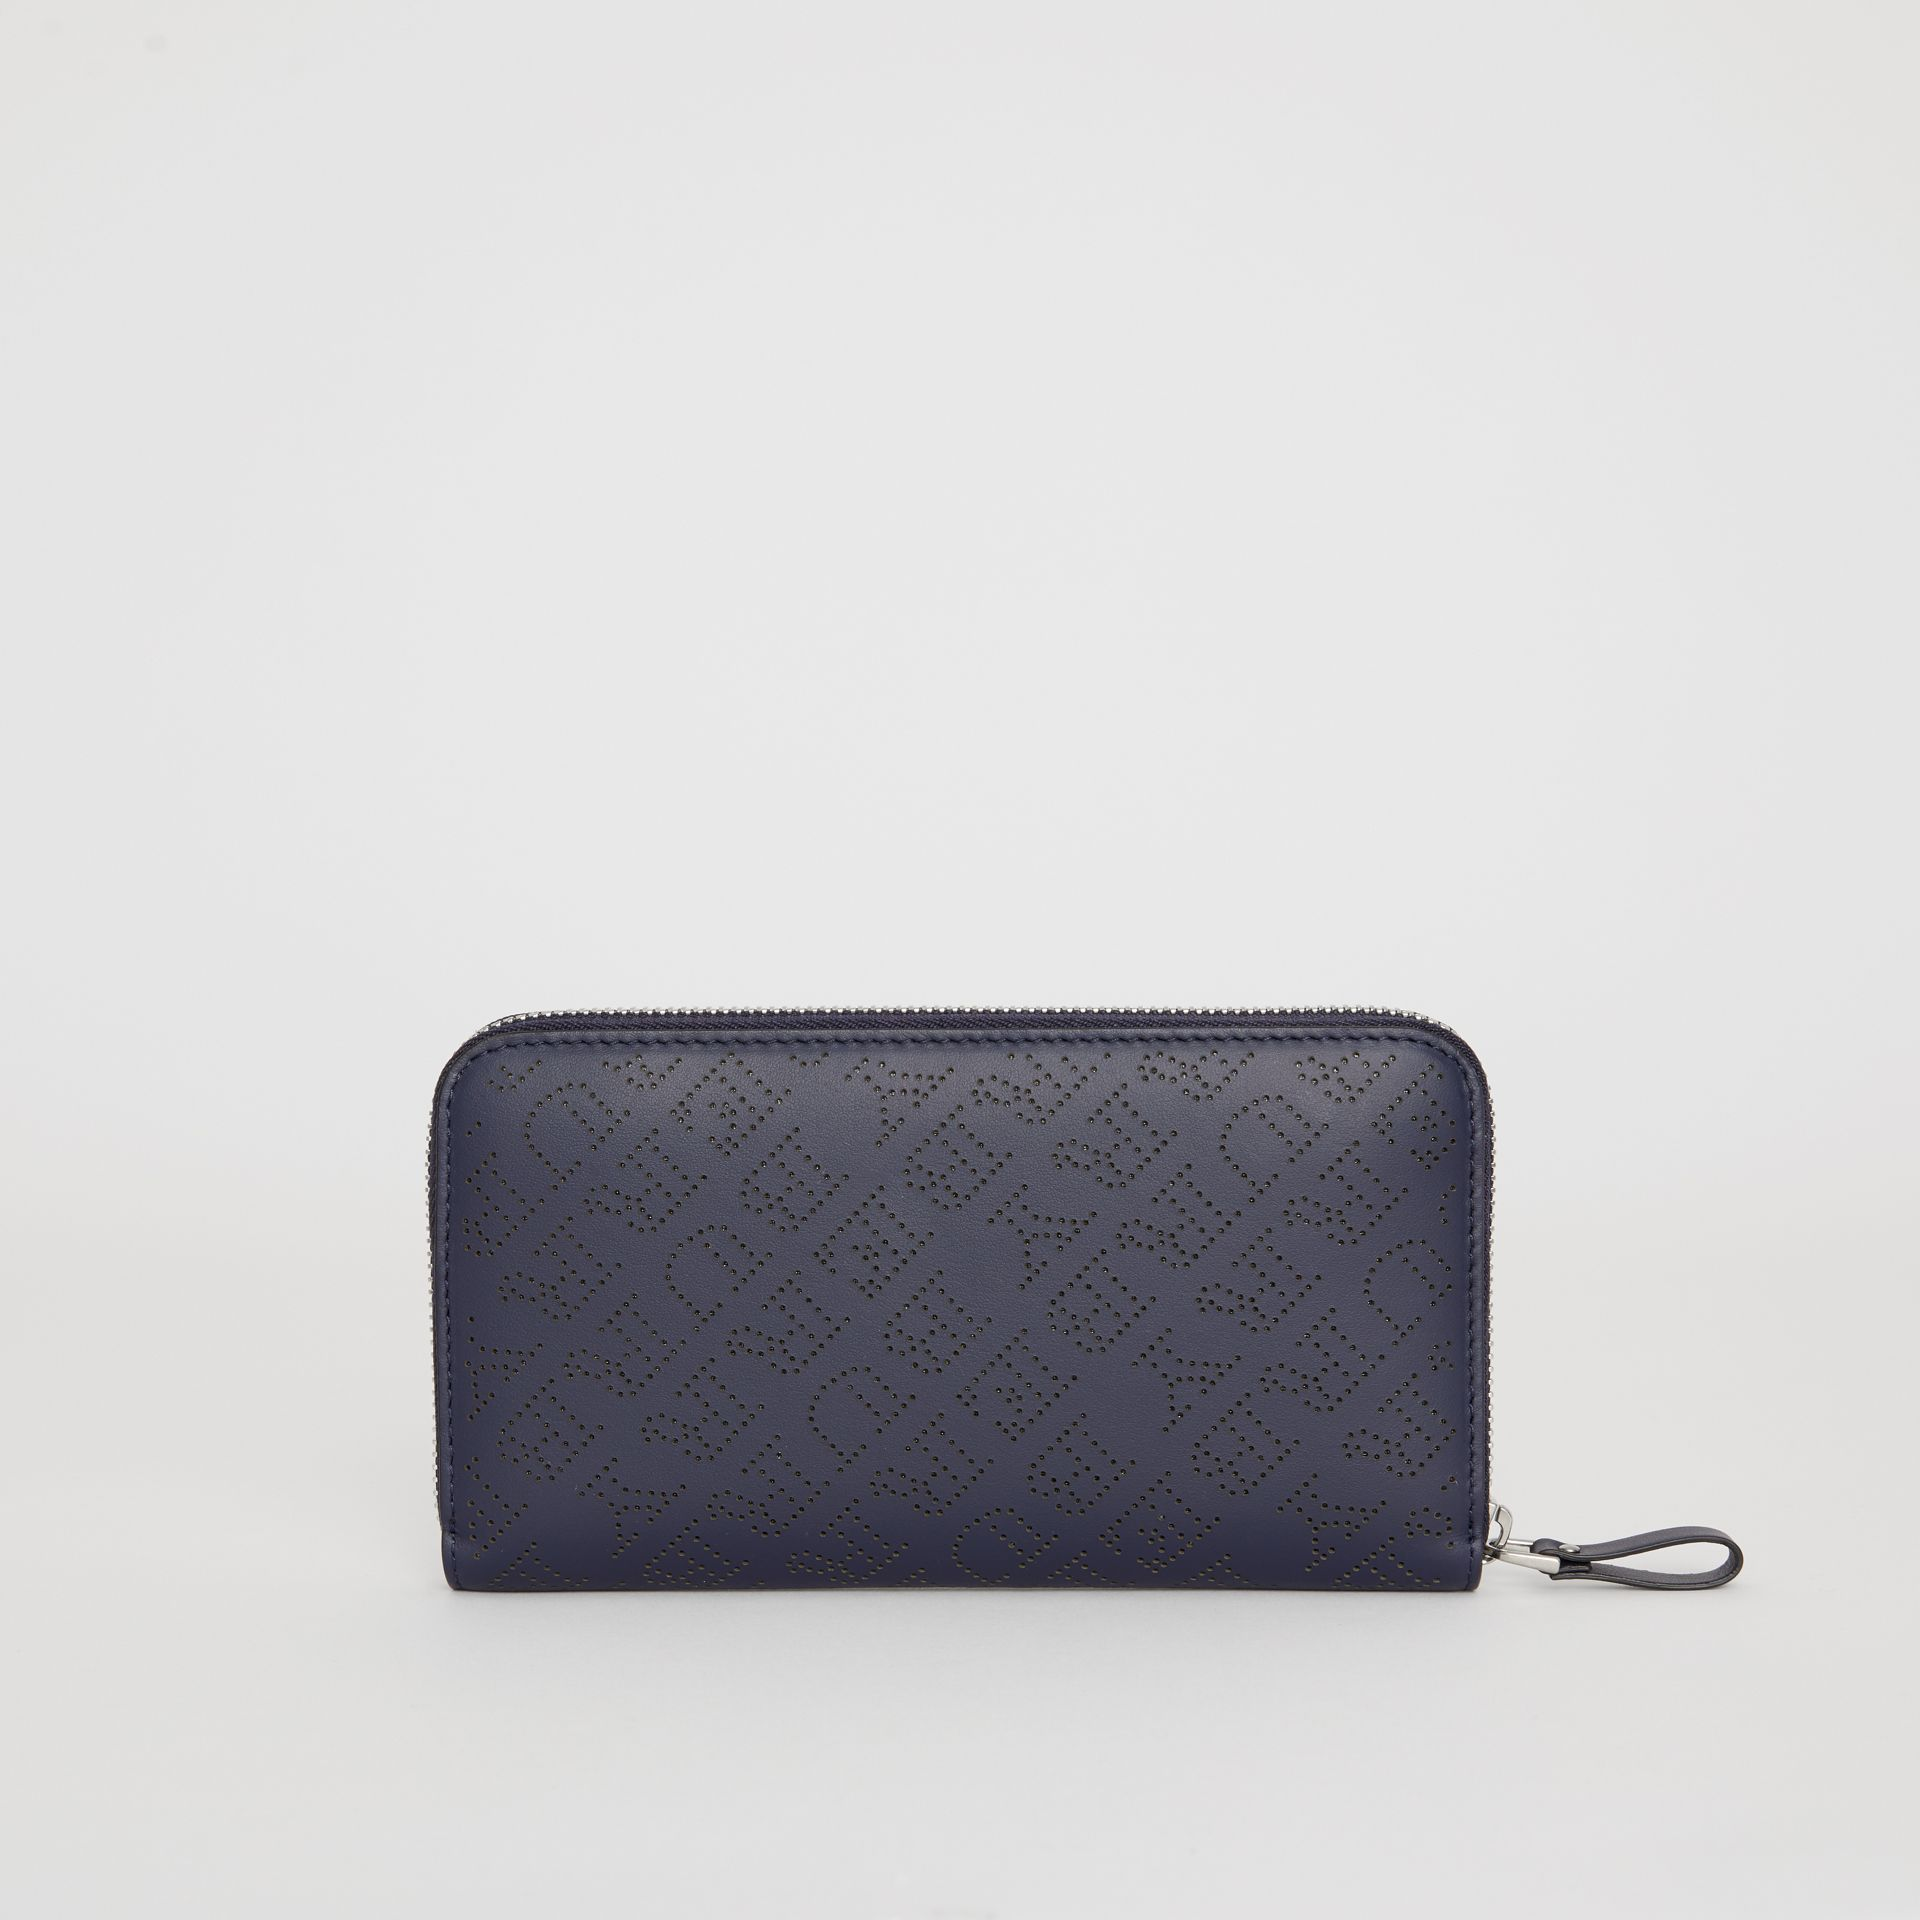 Perforated Leather Ziparound Wallet in Navy - Women | Burberry United Kingdom - gallery image 5